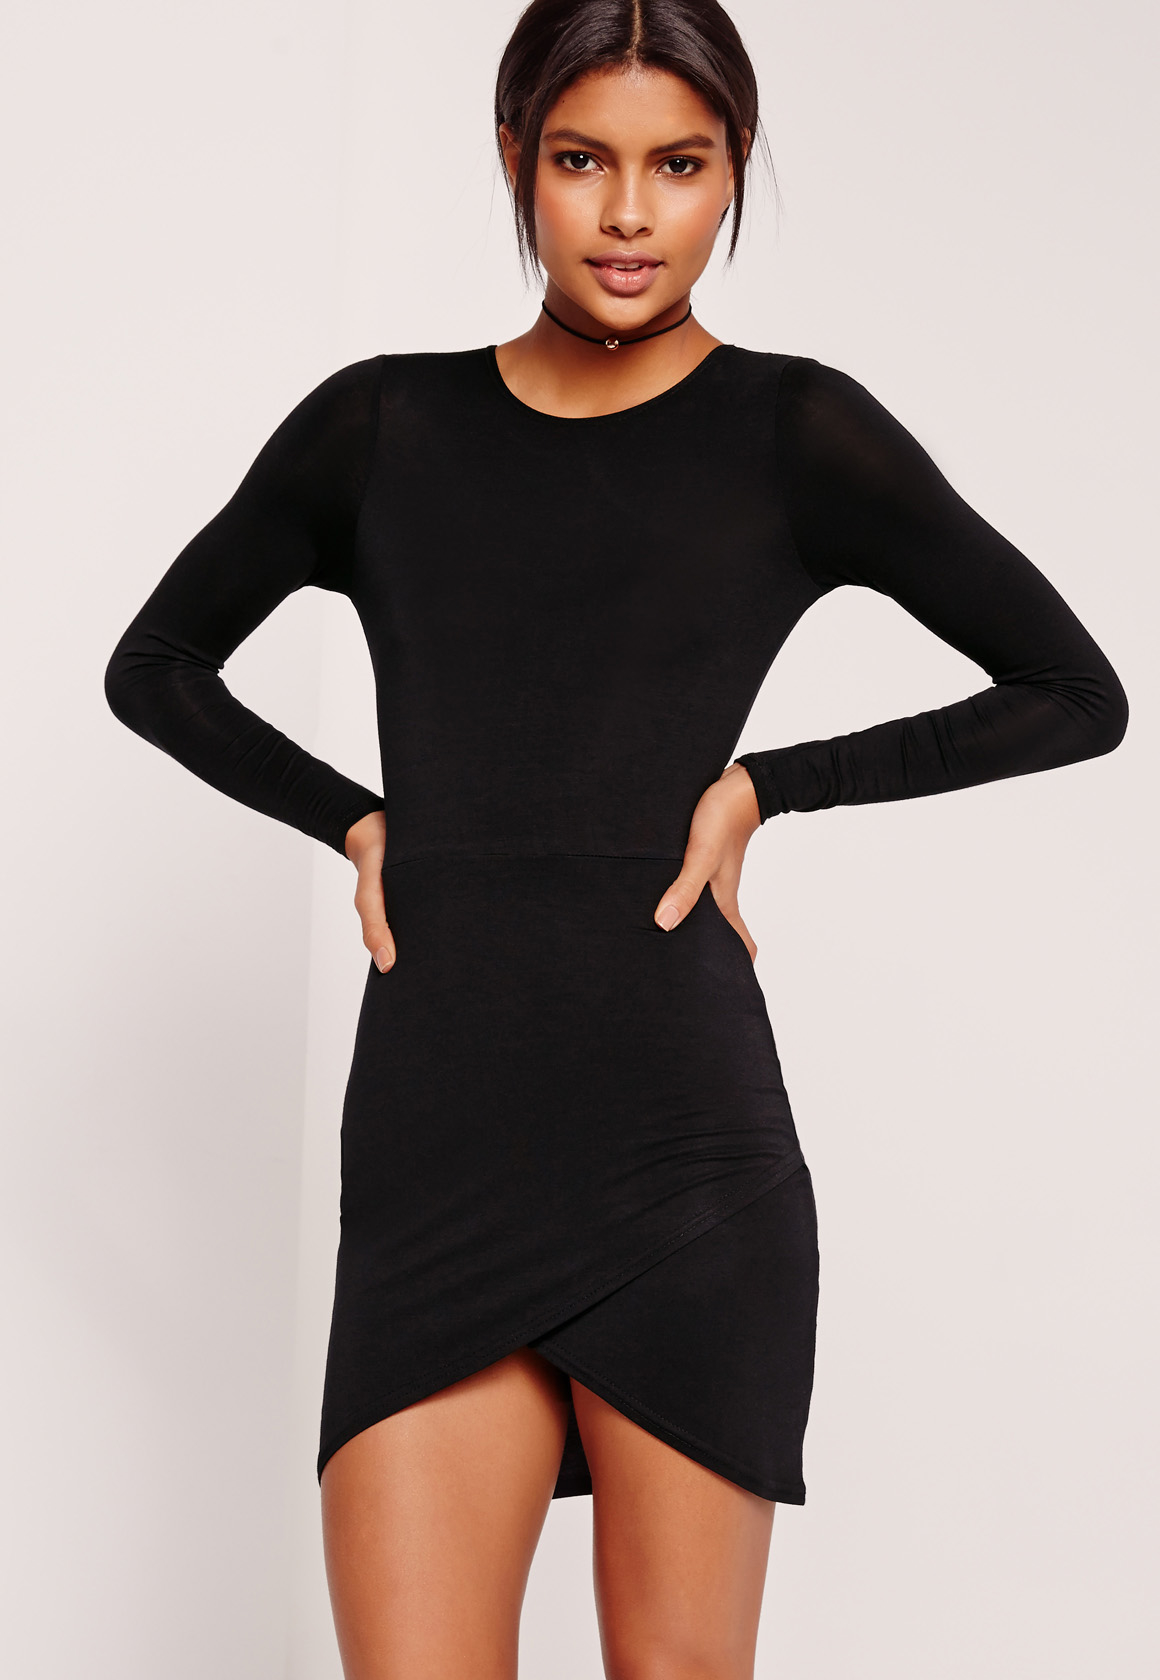 Free shipping asymmetrical tops online store. Best asymmetrical tops for sale. Cheap asymmetrical tops with excellent quality and fast delivery. | 10mins.ml Dress Asymmetrical Sweater Asymmetrical Short Dress Asymmetrical White Blouse Asymmetrical T Shirt Dress Long Asymmetrical Dress Black Asymmetrical Sweater Plus Size.